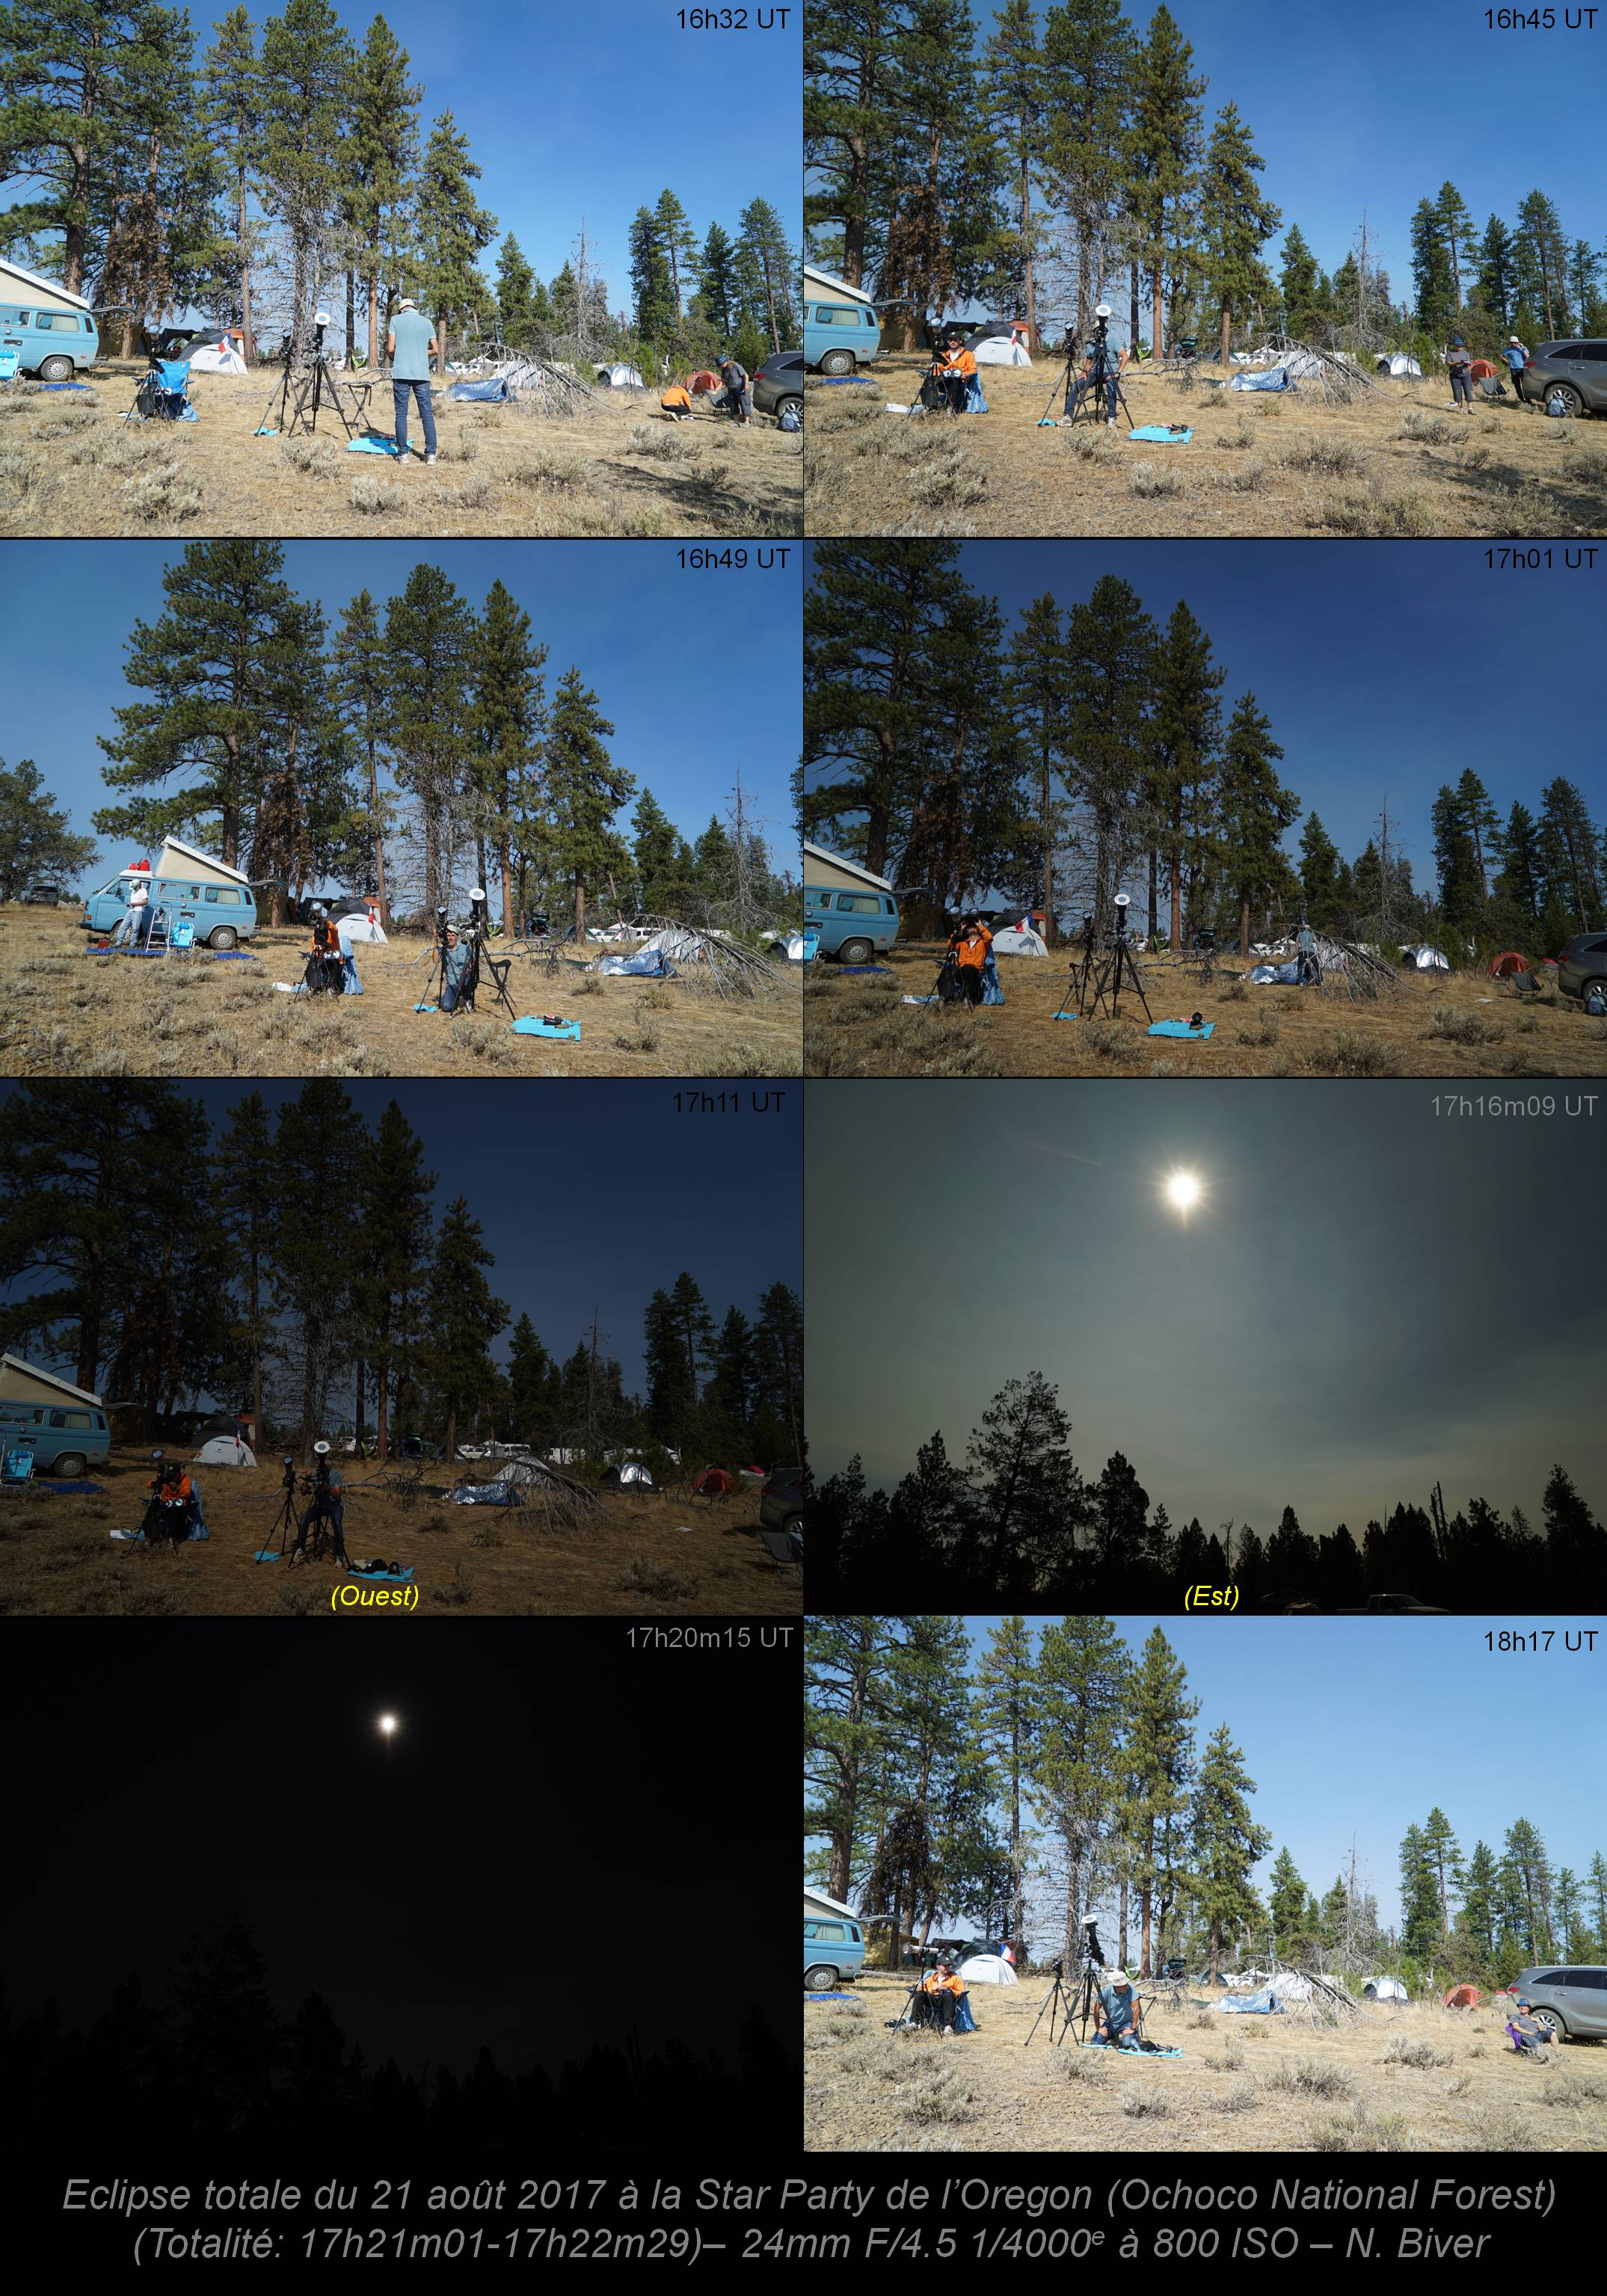 eclipse210817-evolution.jpg